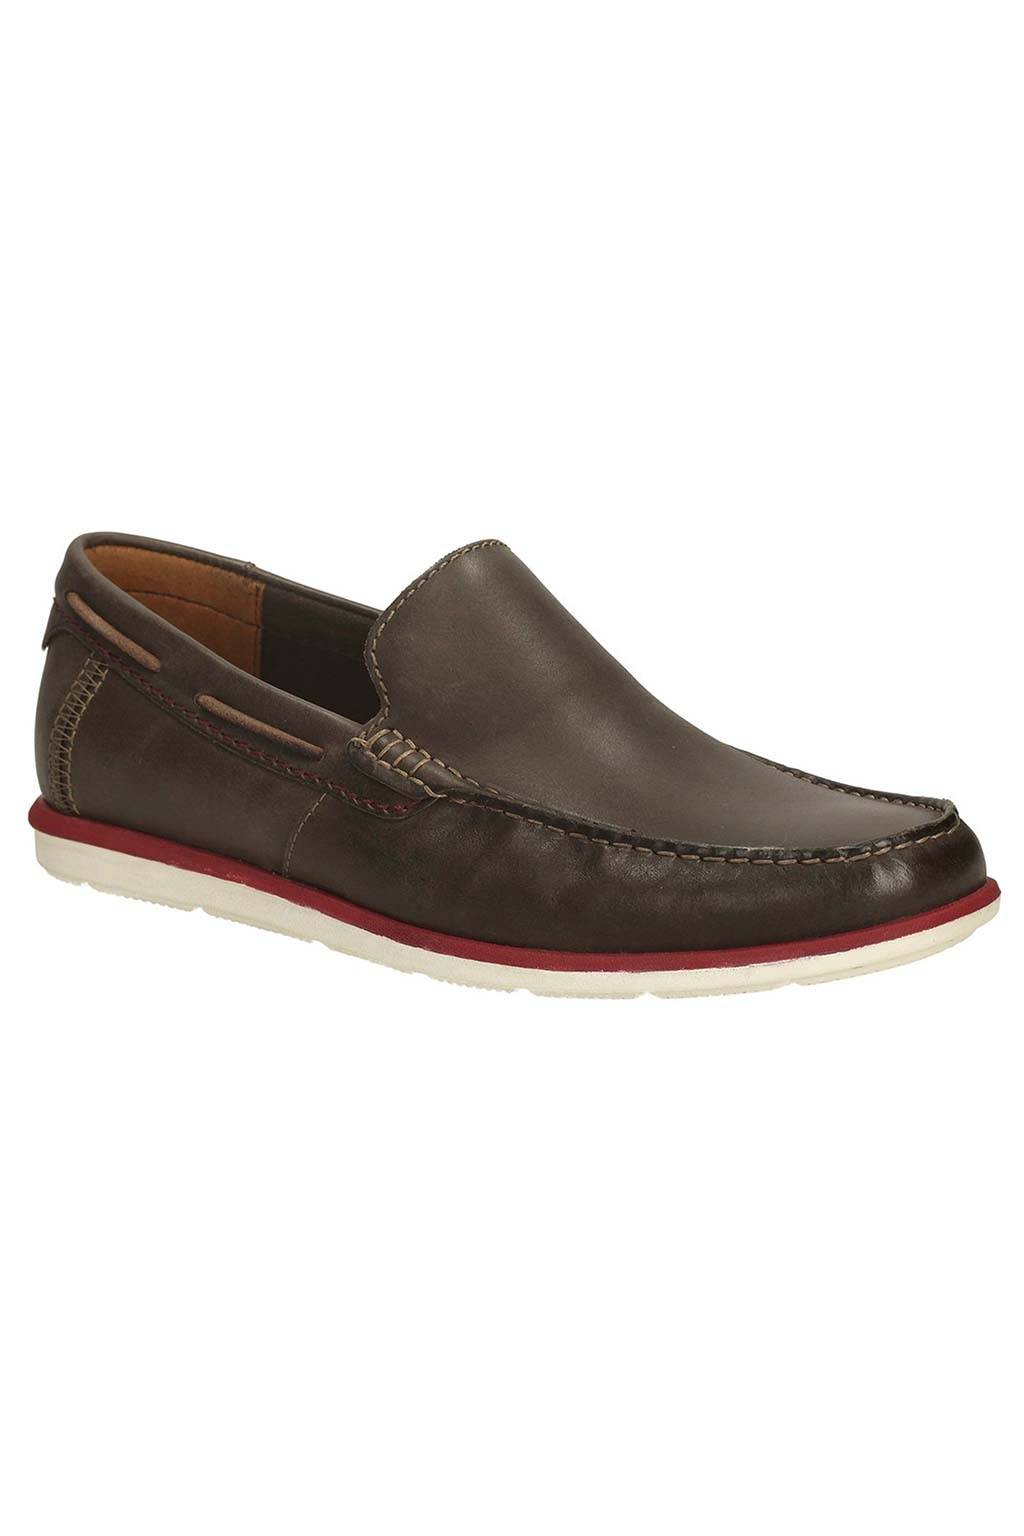 Clarks Kelan Lane Dark Brown Leather